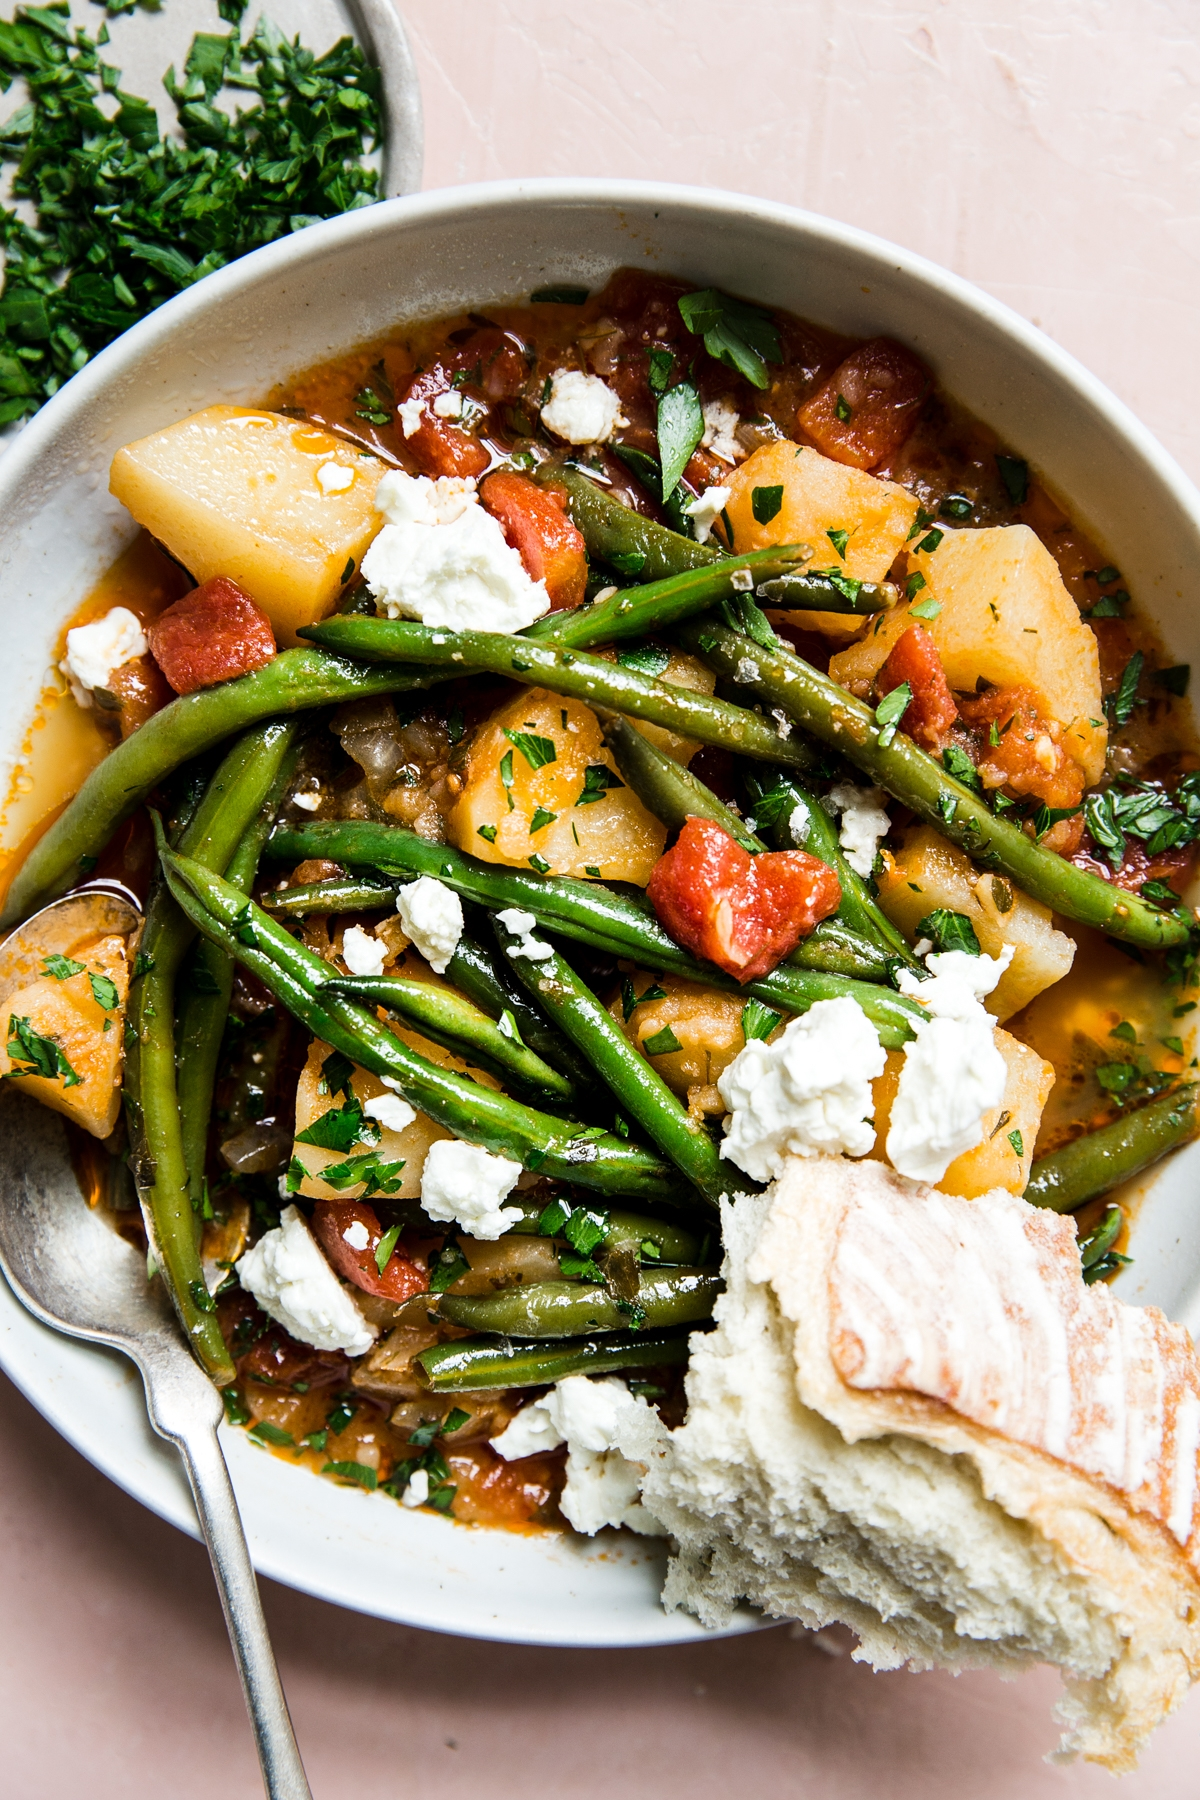 fasolakia-Greek-Green-Beans-12.jpg